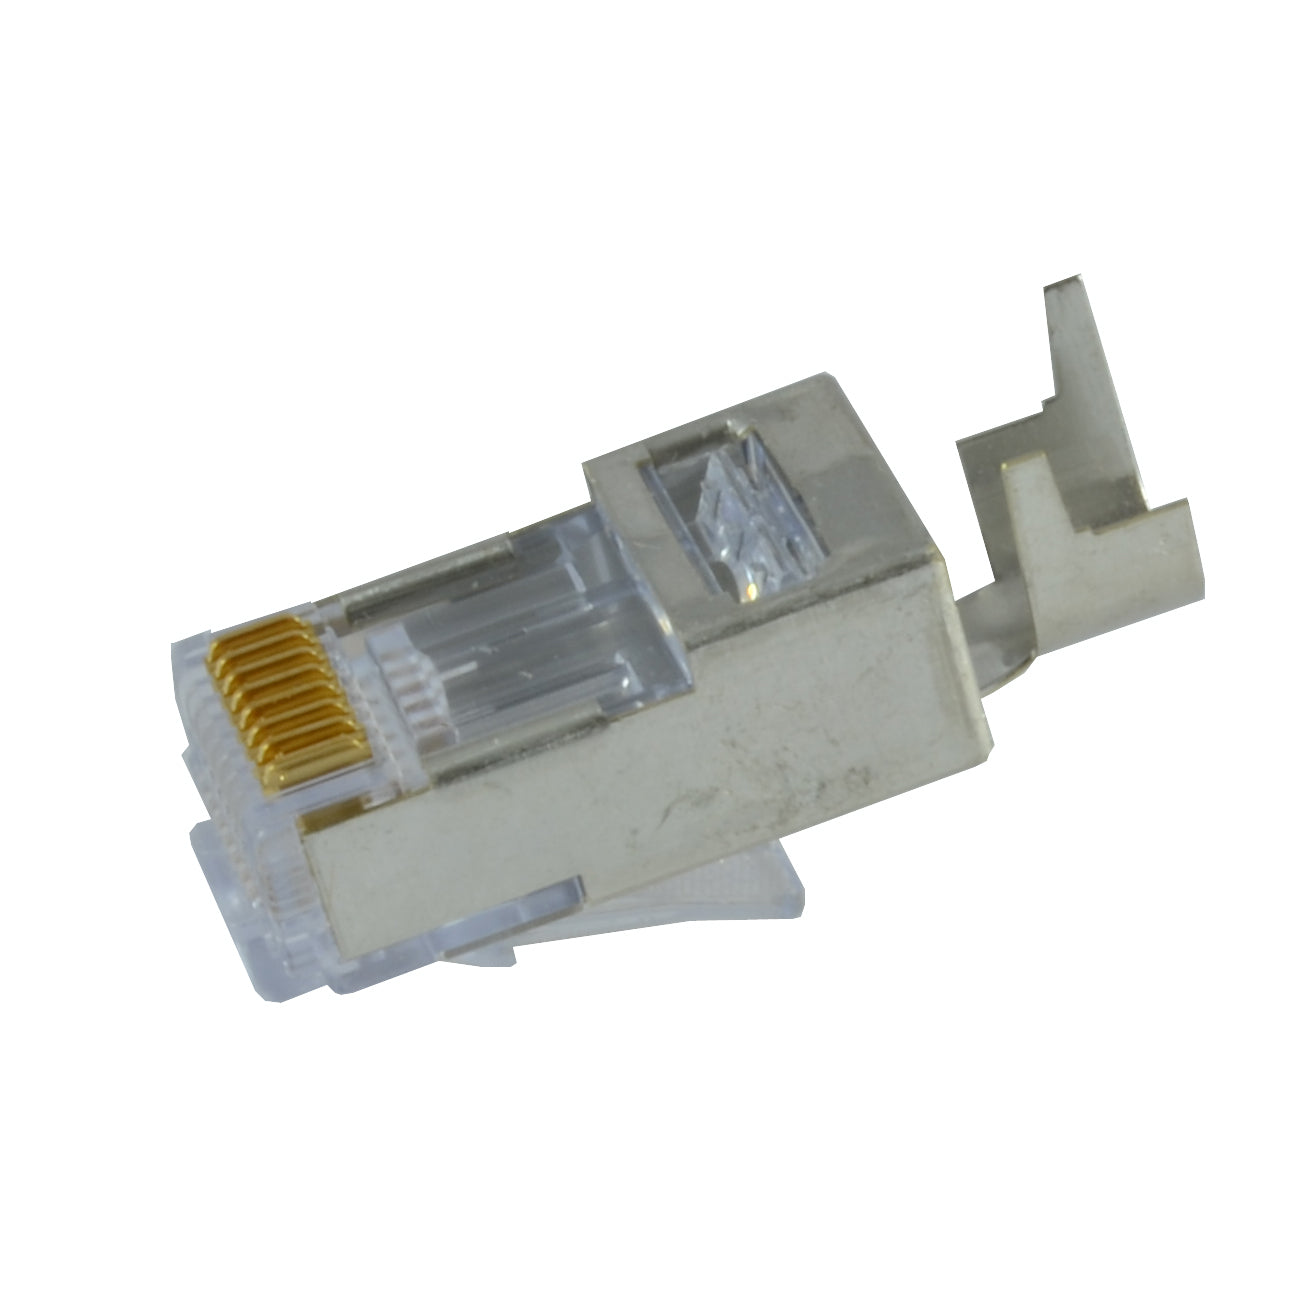 EZ RJ45 CAT6 external ground 100022